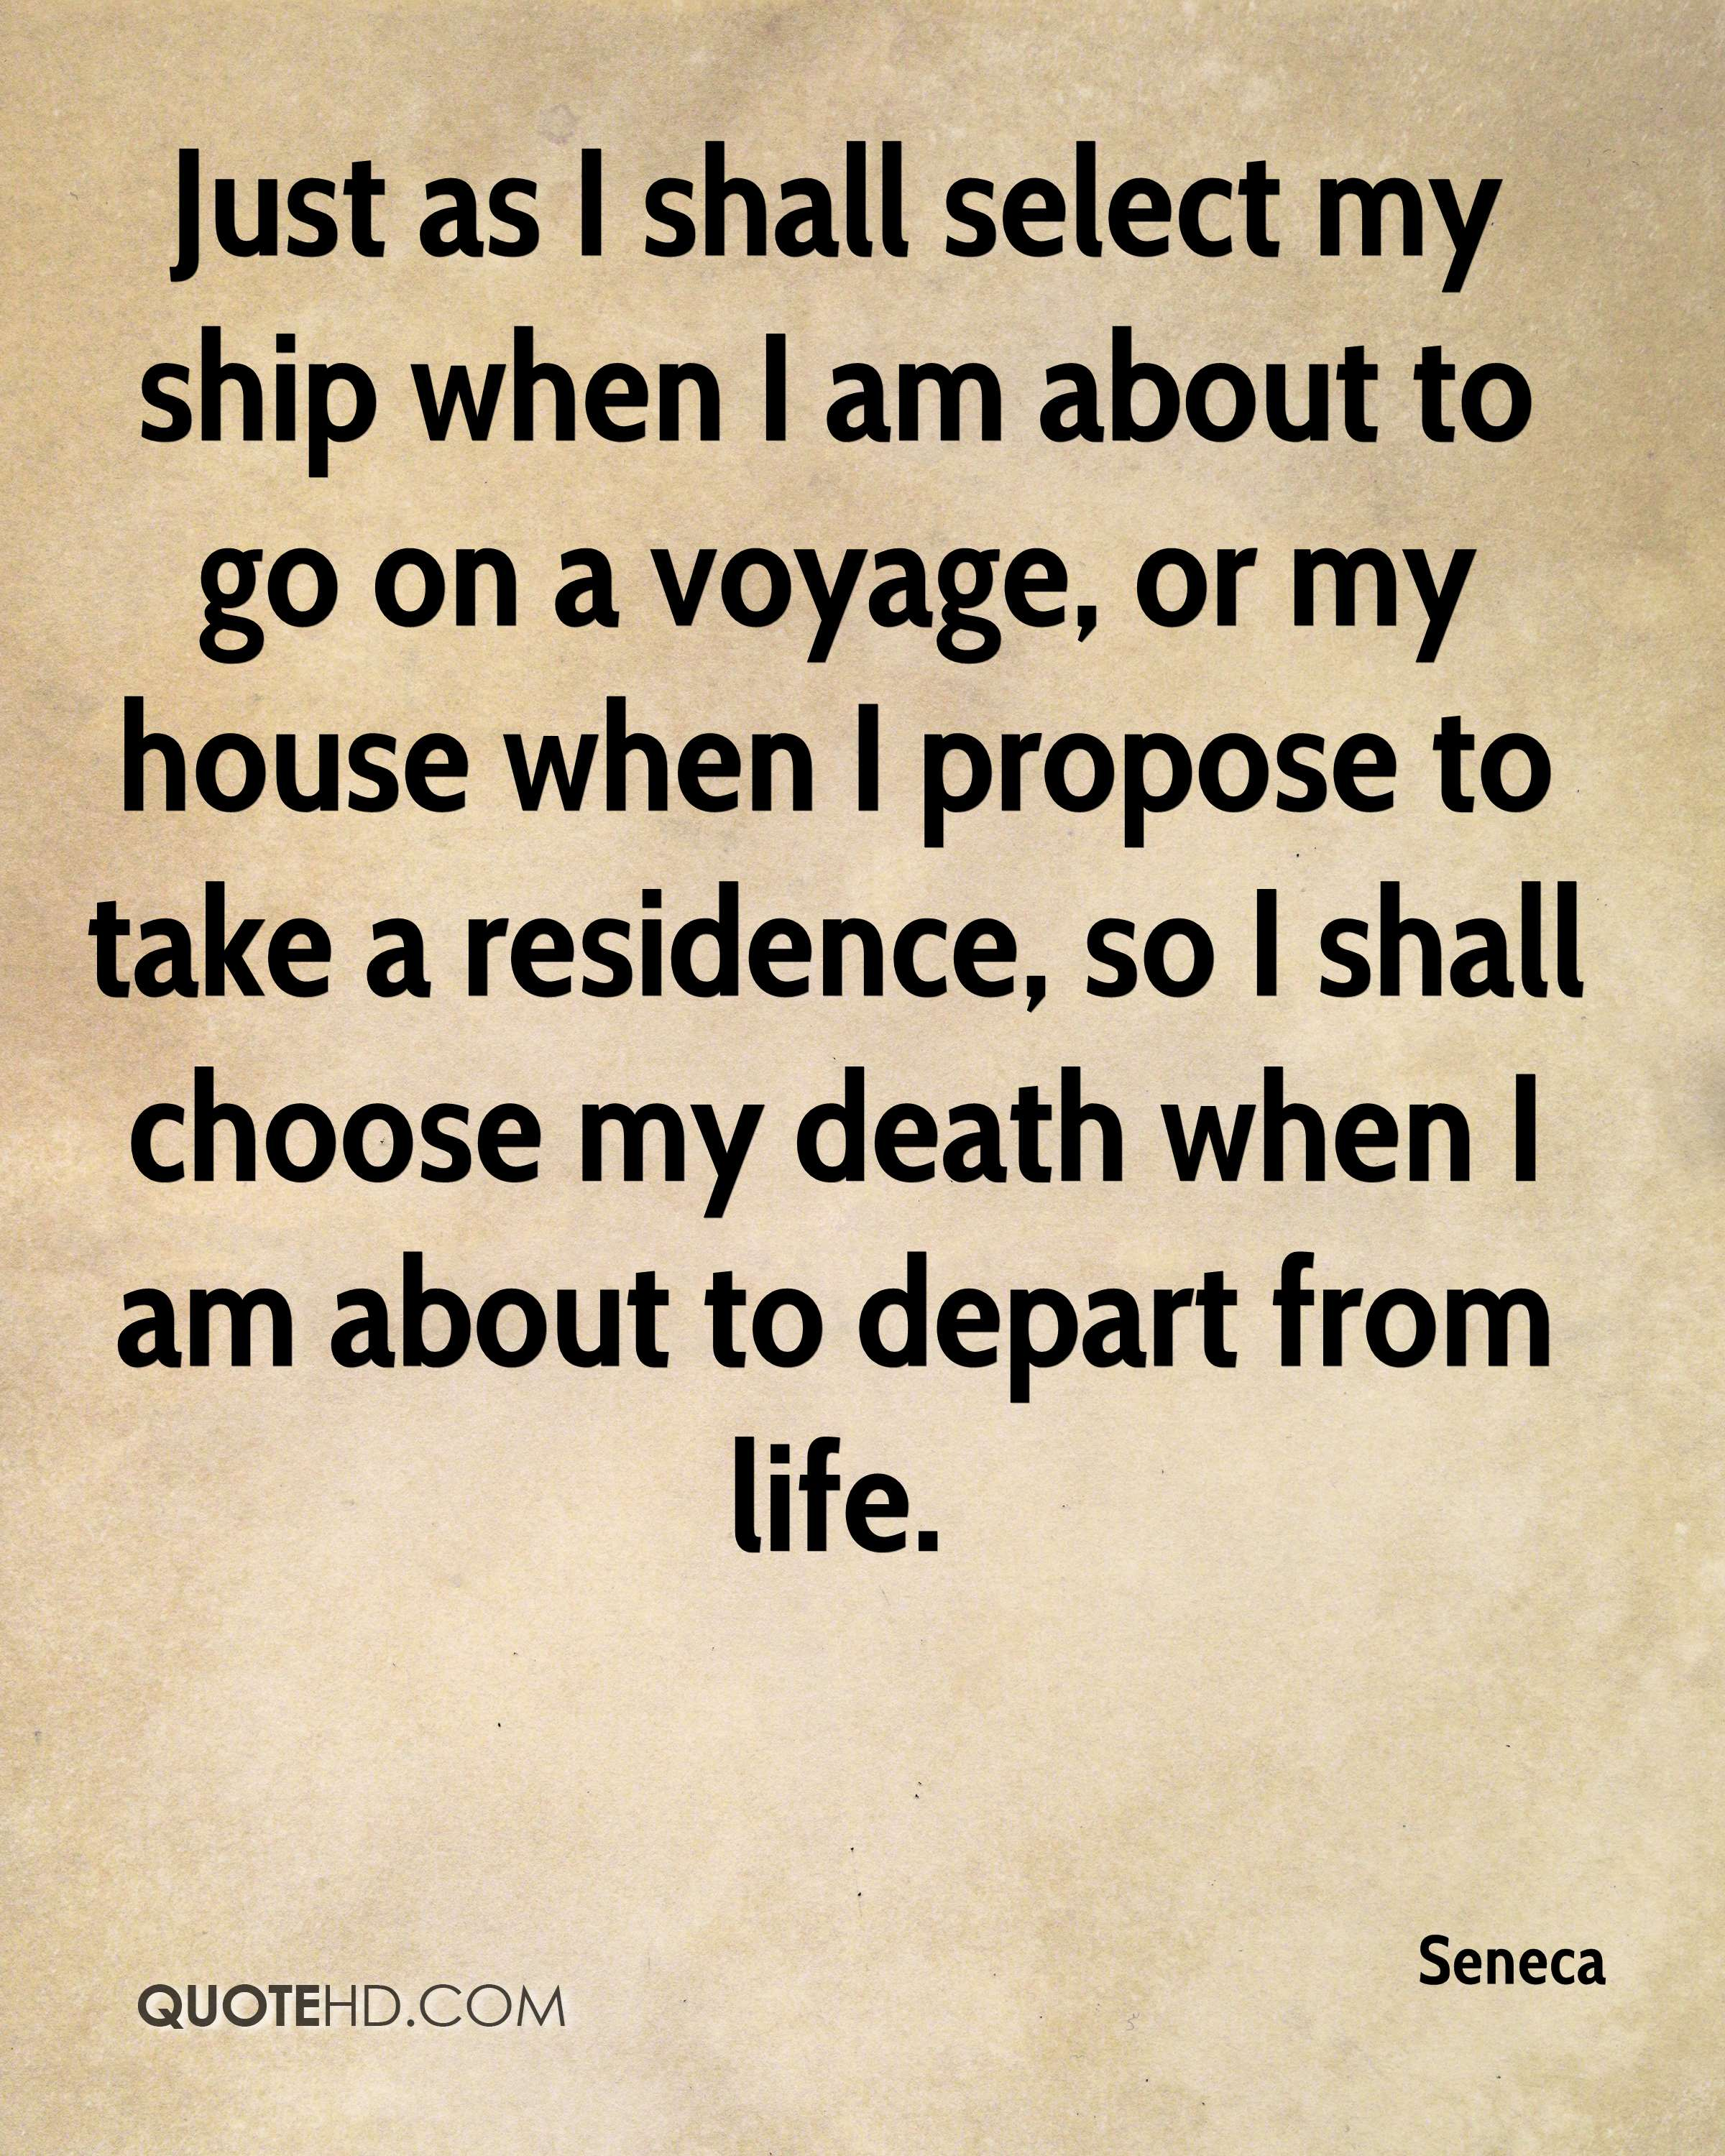 Just as I shall select my ship when I am about to go on a voyage, or my house when I propose to take a residence, so I shall choose my death when I am about to depart from life.